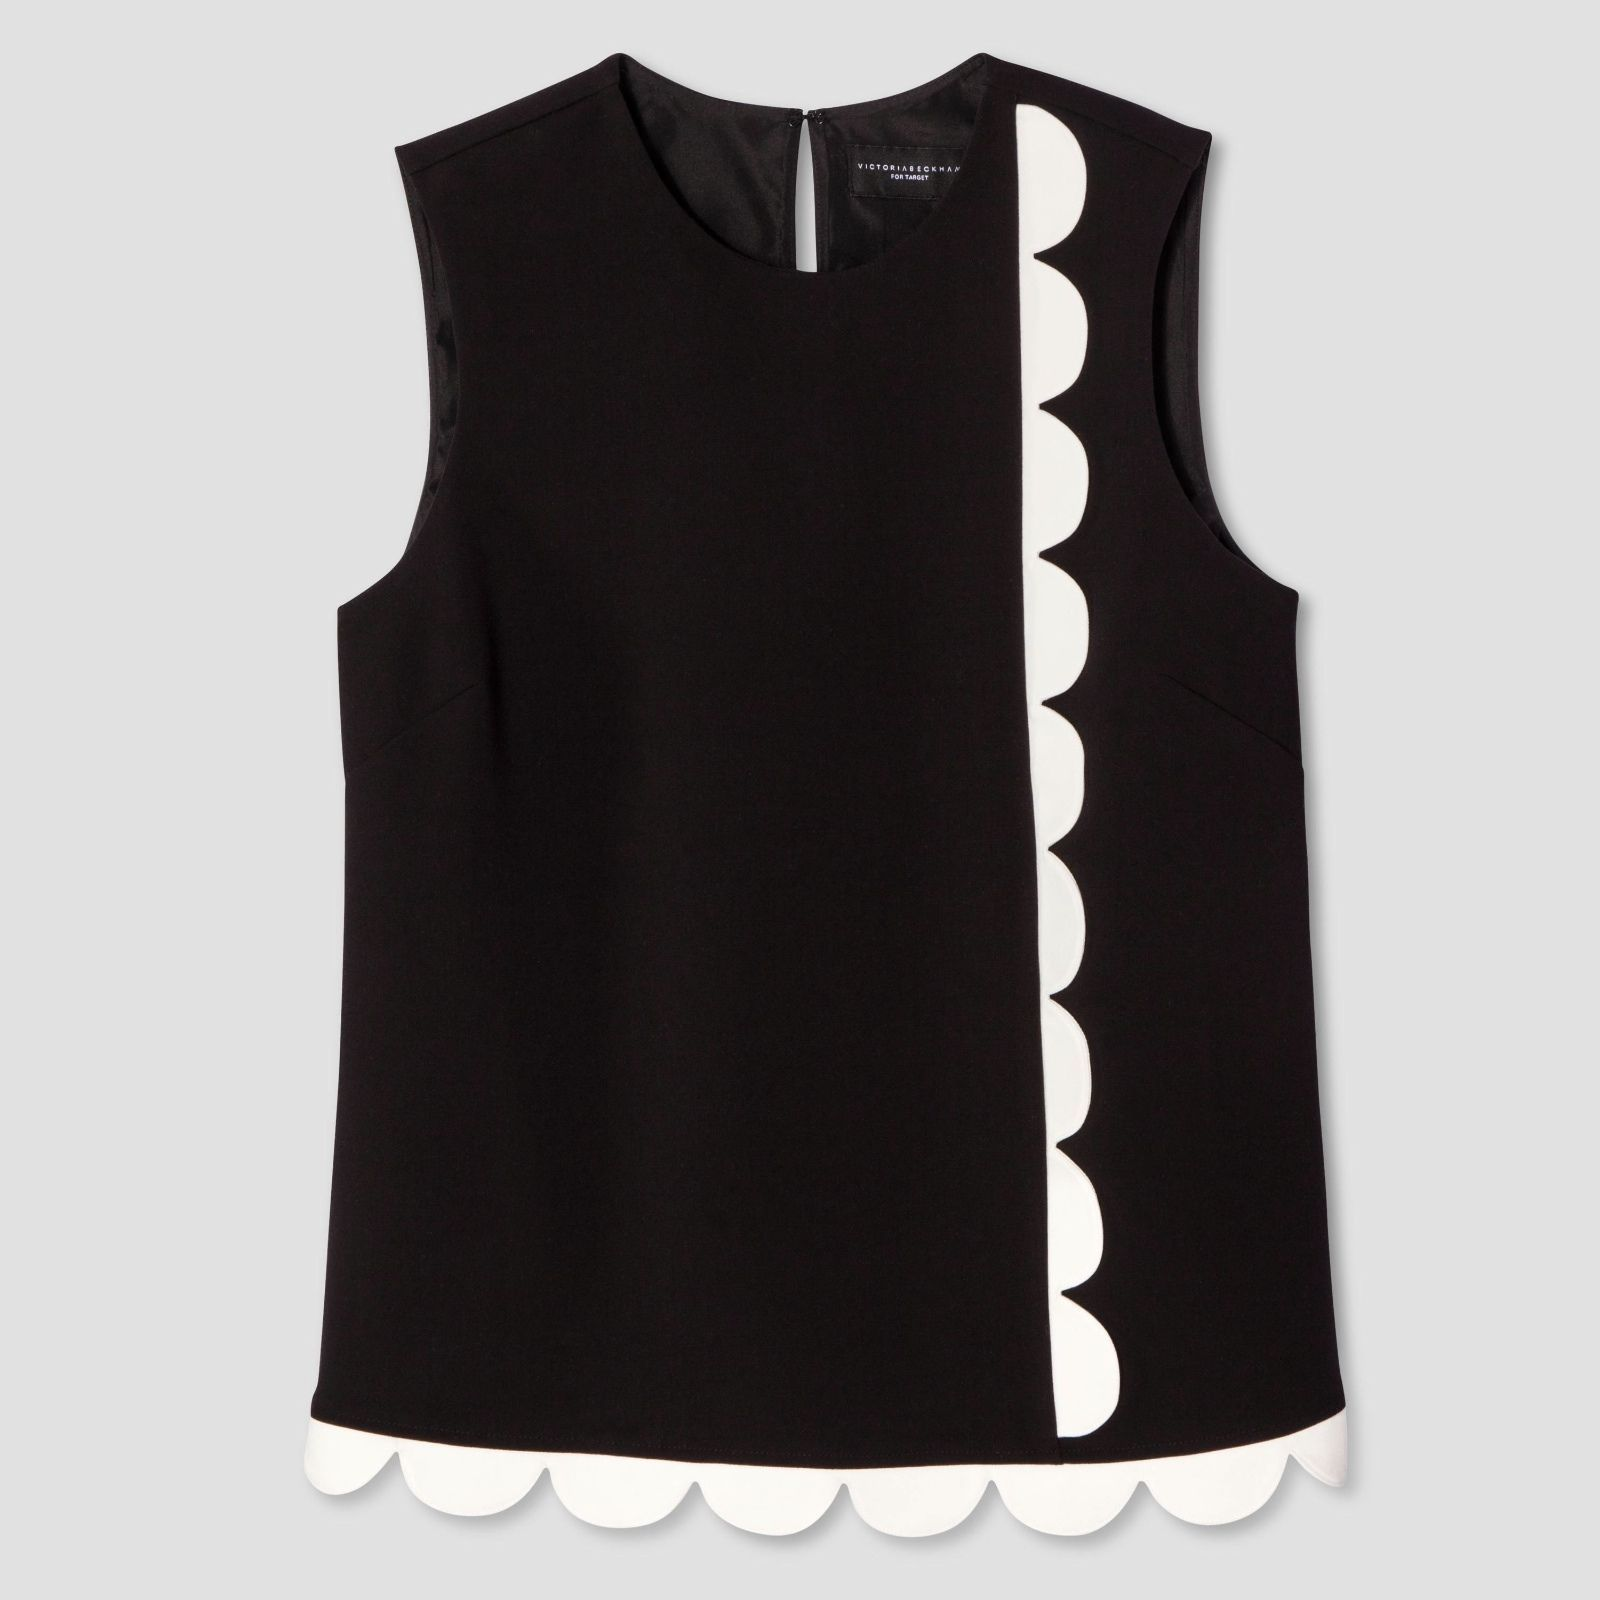 bc1c1db2e0516 NWT Victoria Beckham Women s Black white Twill Tank Top Scallop 1X